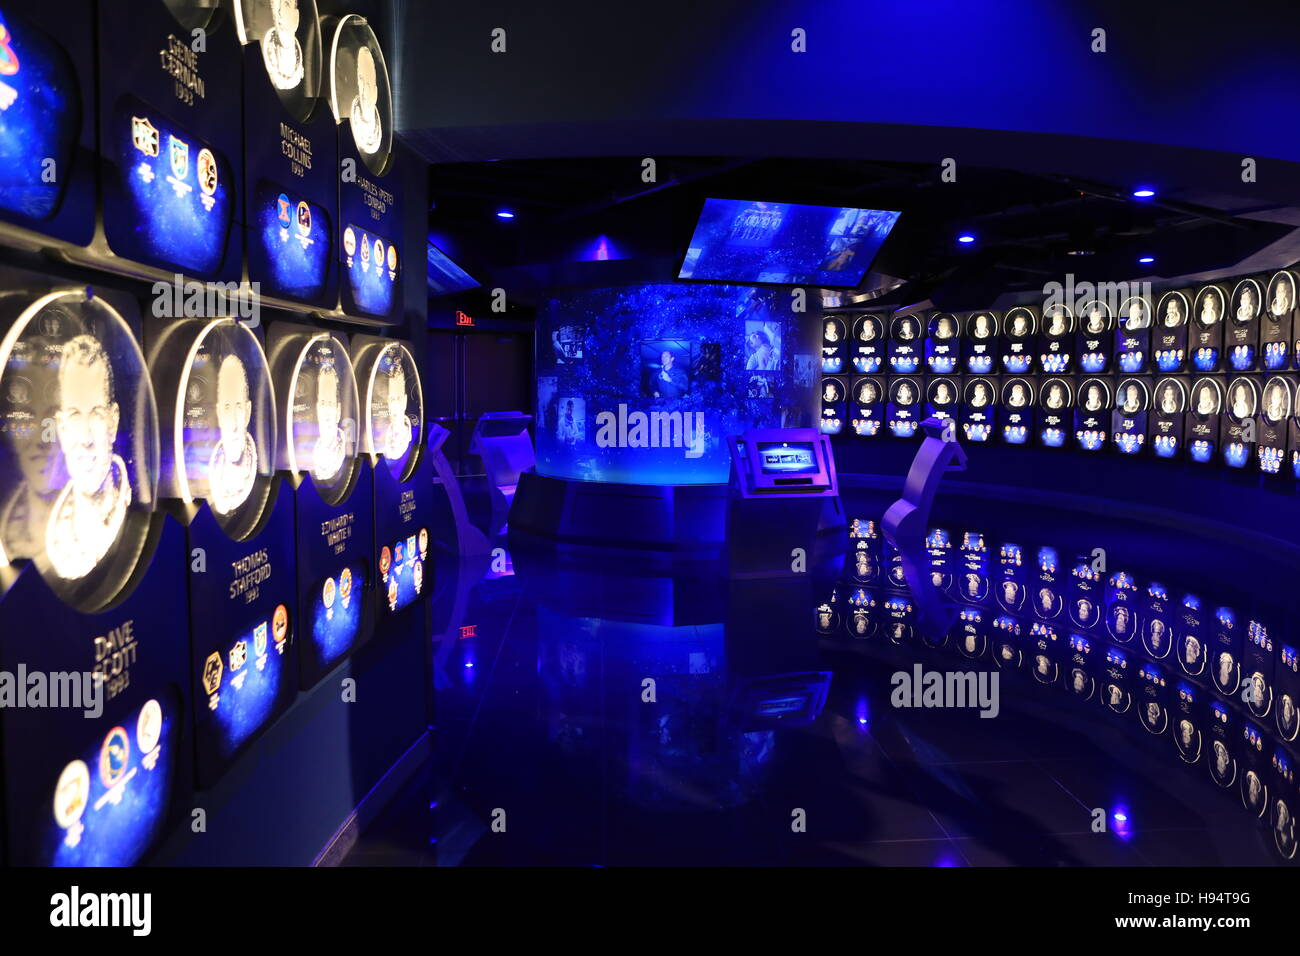 Der US-Astronaut Hall Of Fame, Teil der Helden und Legenden Attraktion am Kennedy Space Center Visitor Complex 7. Stockbild